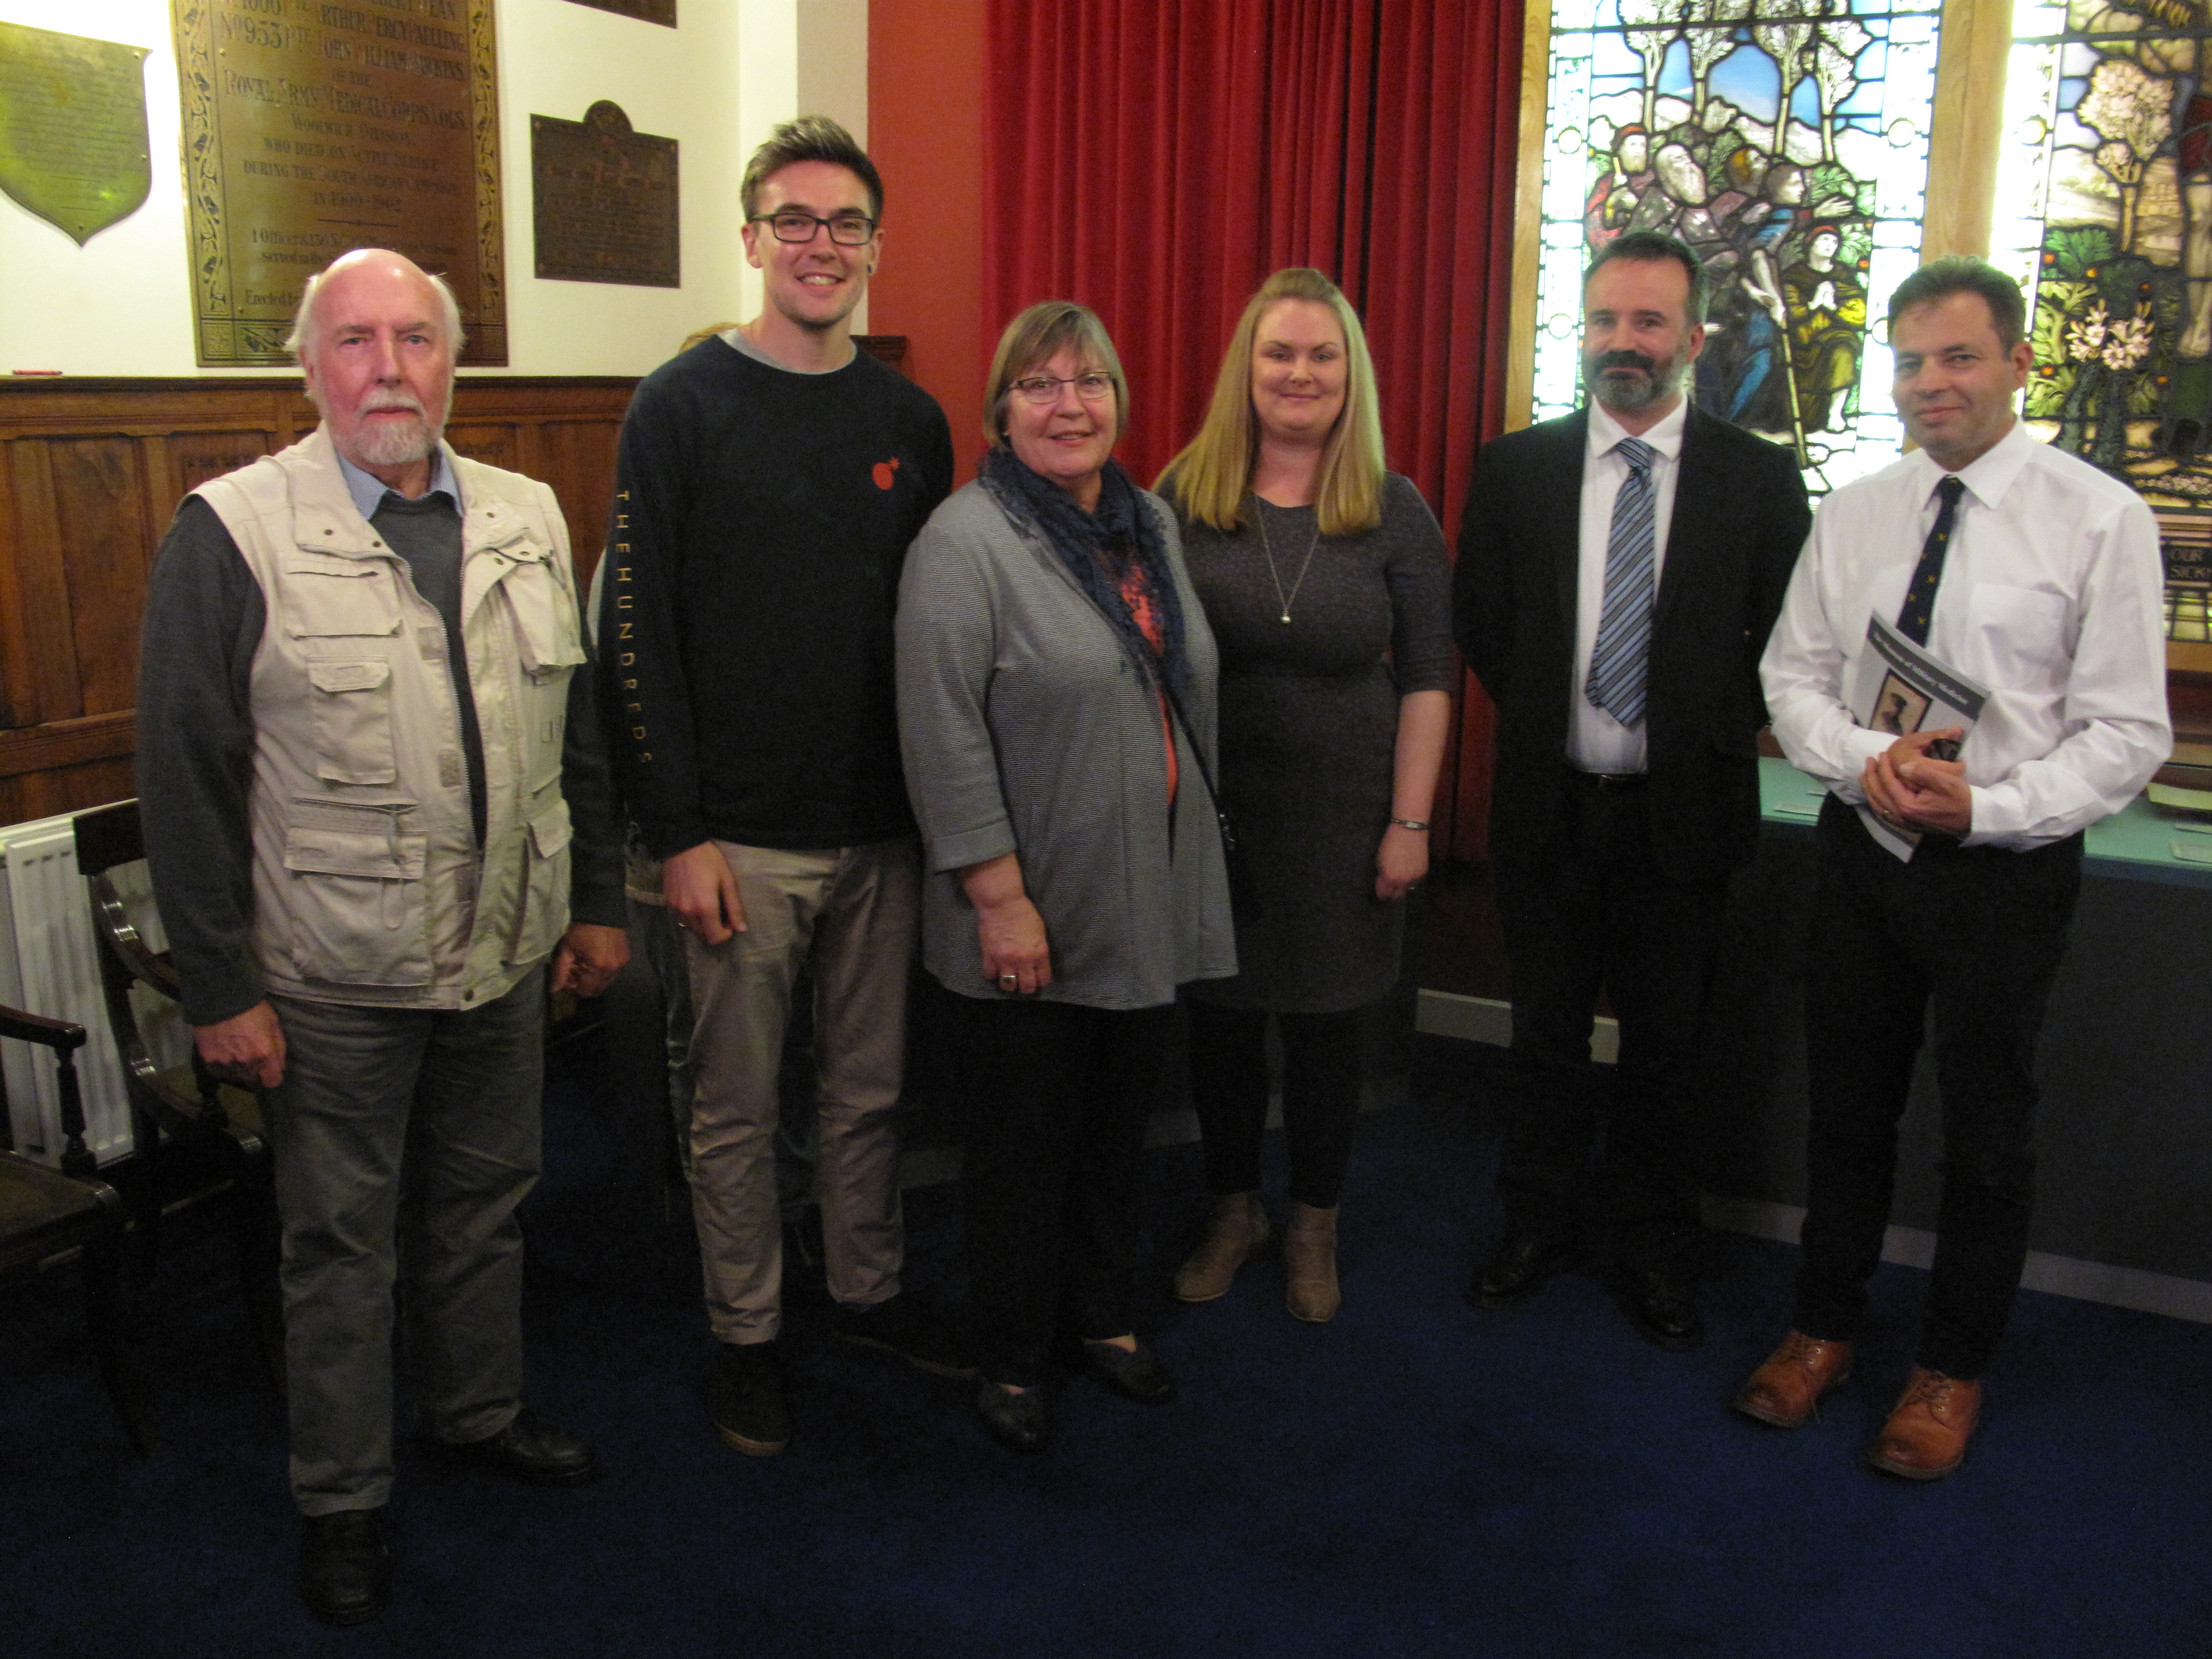 Left to right: Dr William Hunt (BGU); James Root (great grandson of the diarist); Jane Root (grand-daughter of the diarist); Dr Claire Hubbard-Hall (BGU); Jason Semmens (Museum Director); Colonel Ashleigh Boreham (Head of Army Medical Services).